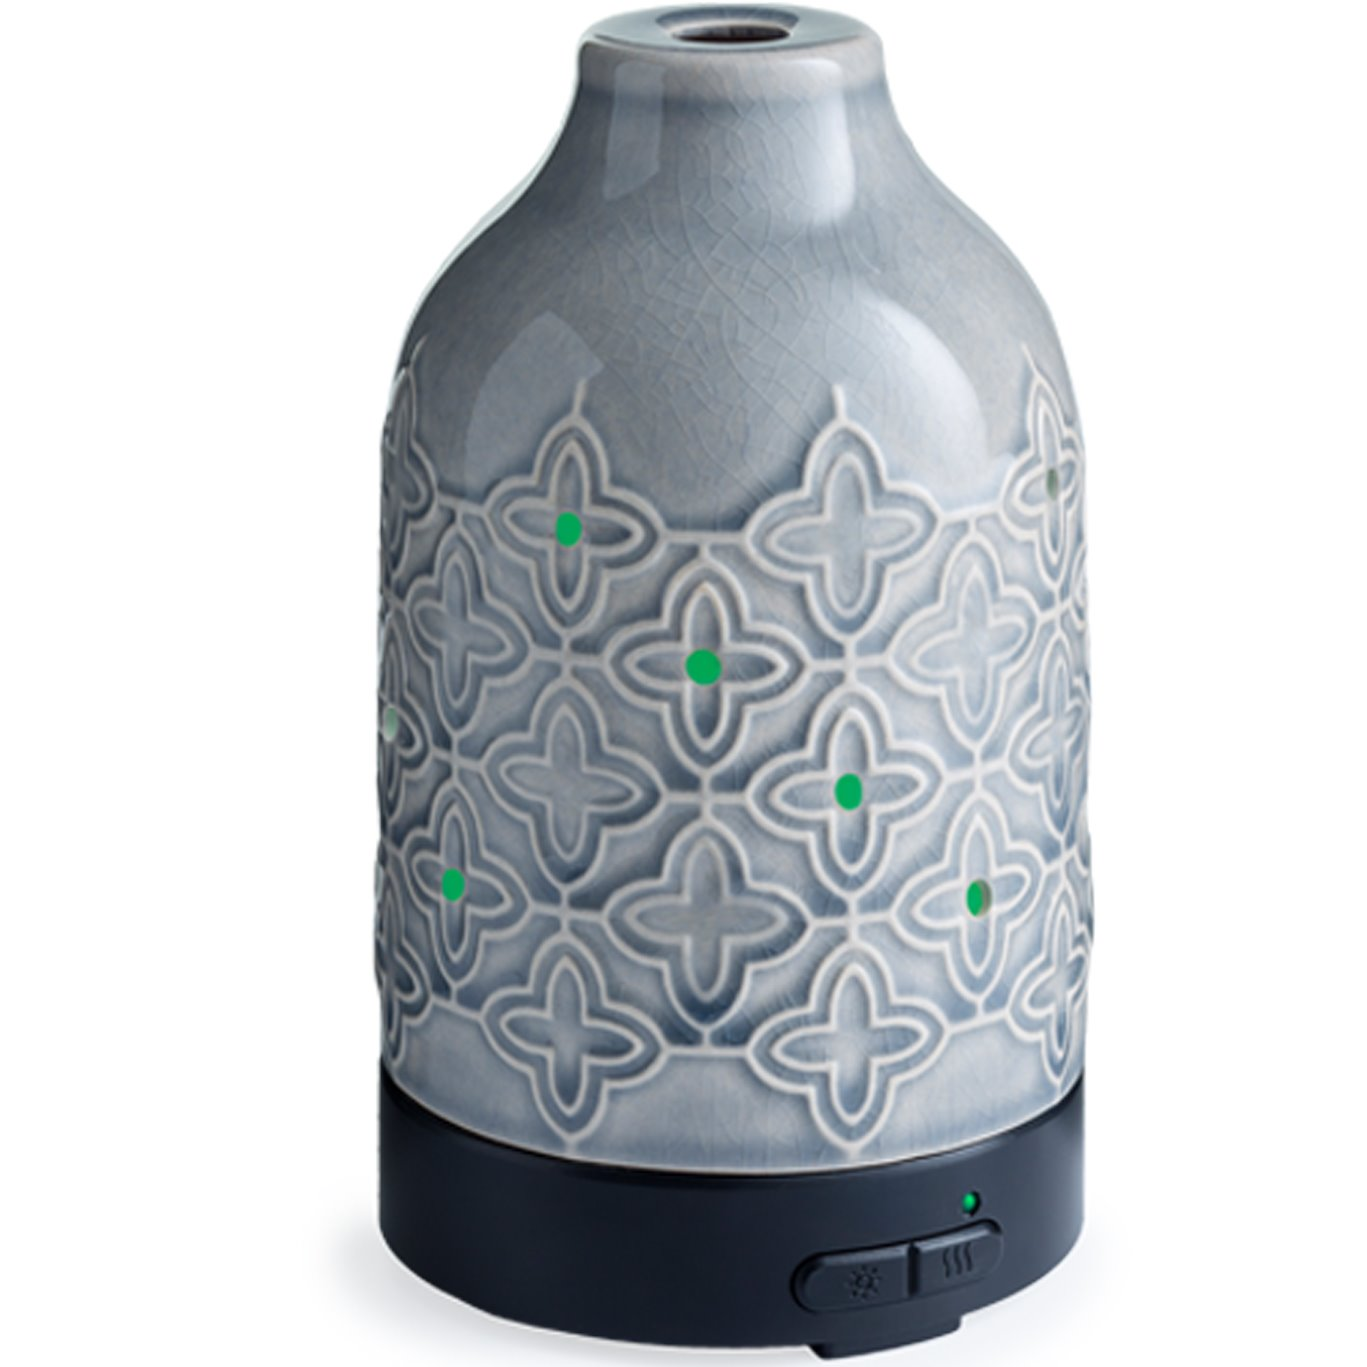 Jasmine Ultrasonic Essential Oil Diffuser by Airomé